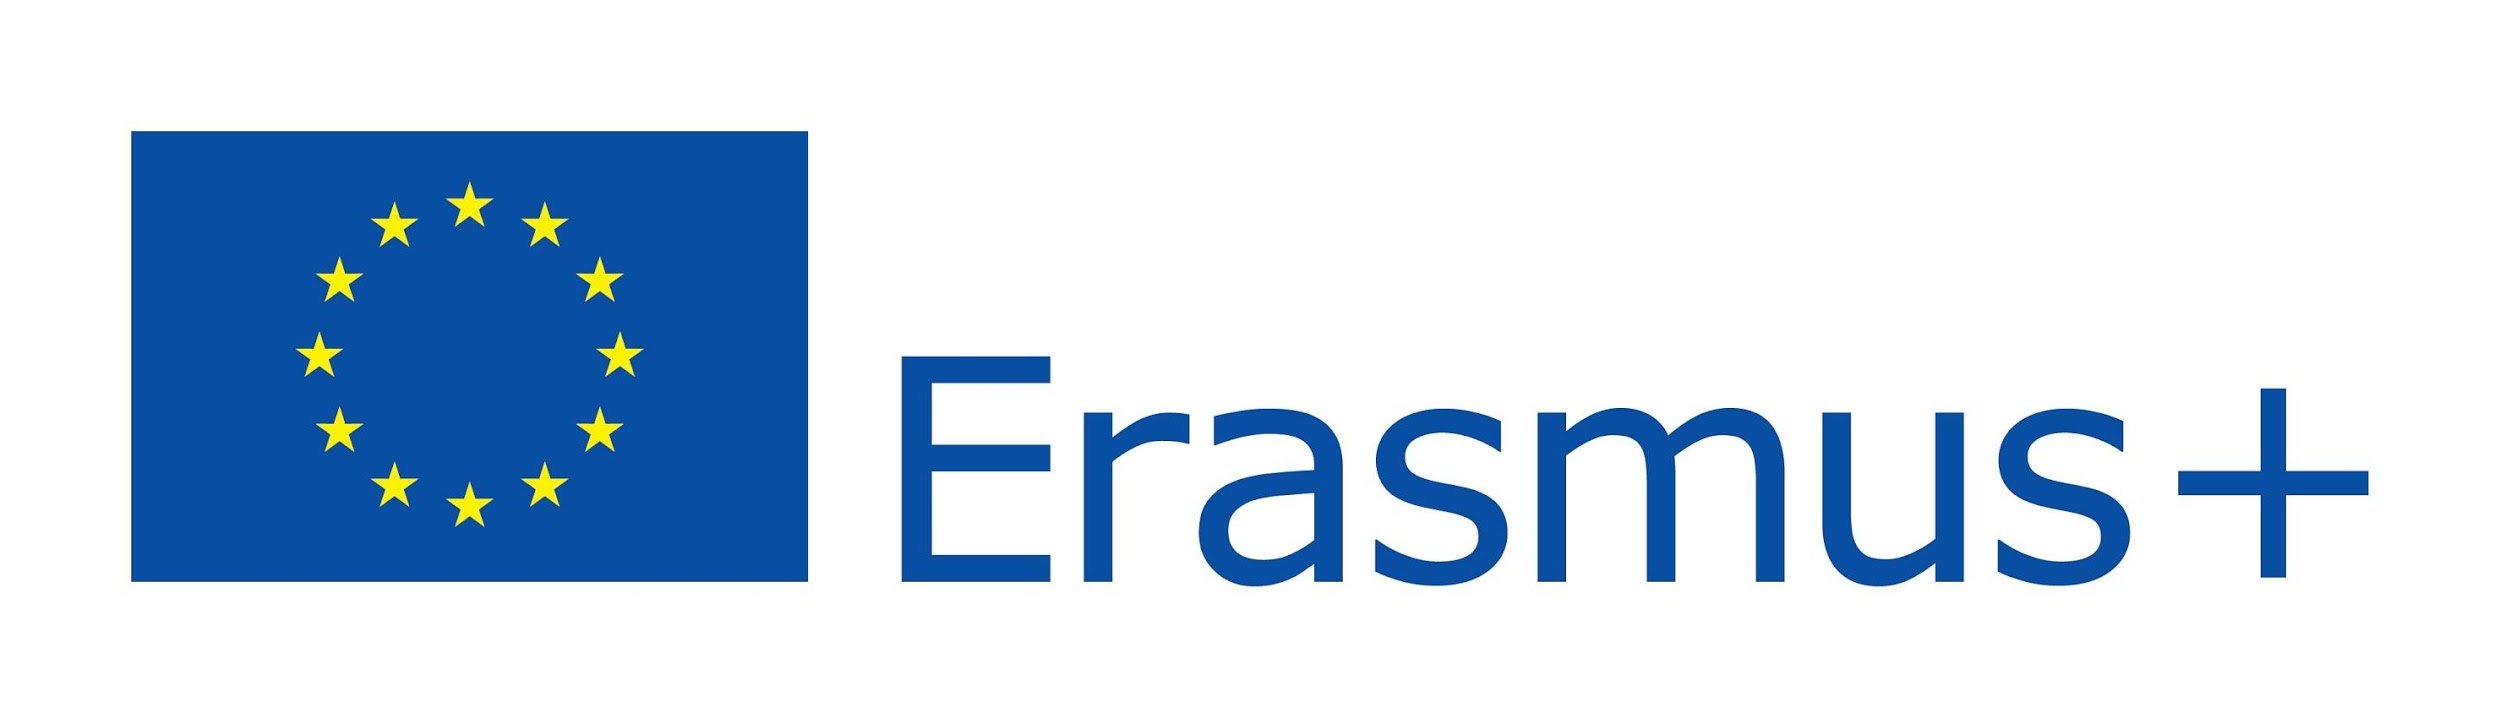 C:\Users\user\Desktop\LOGOS CCRSM. CMLI MUSICHILD\Erasmus+_COLOUR.jpg